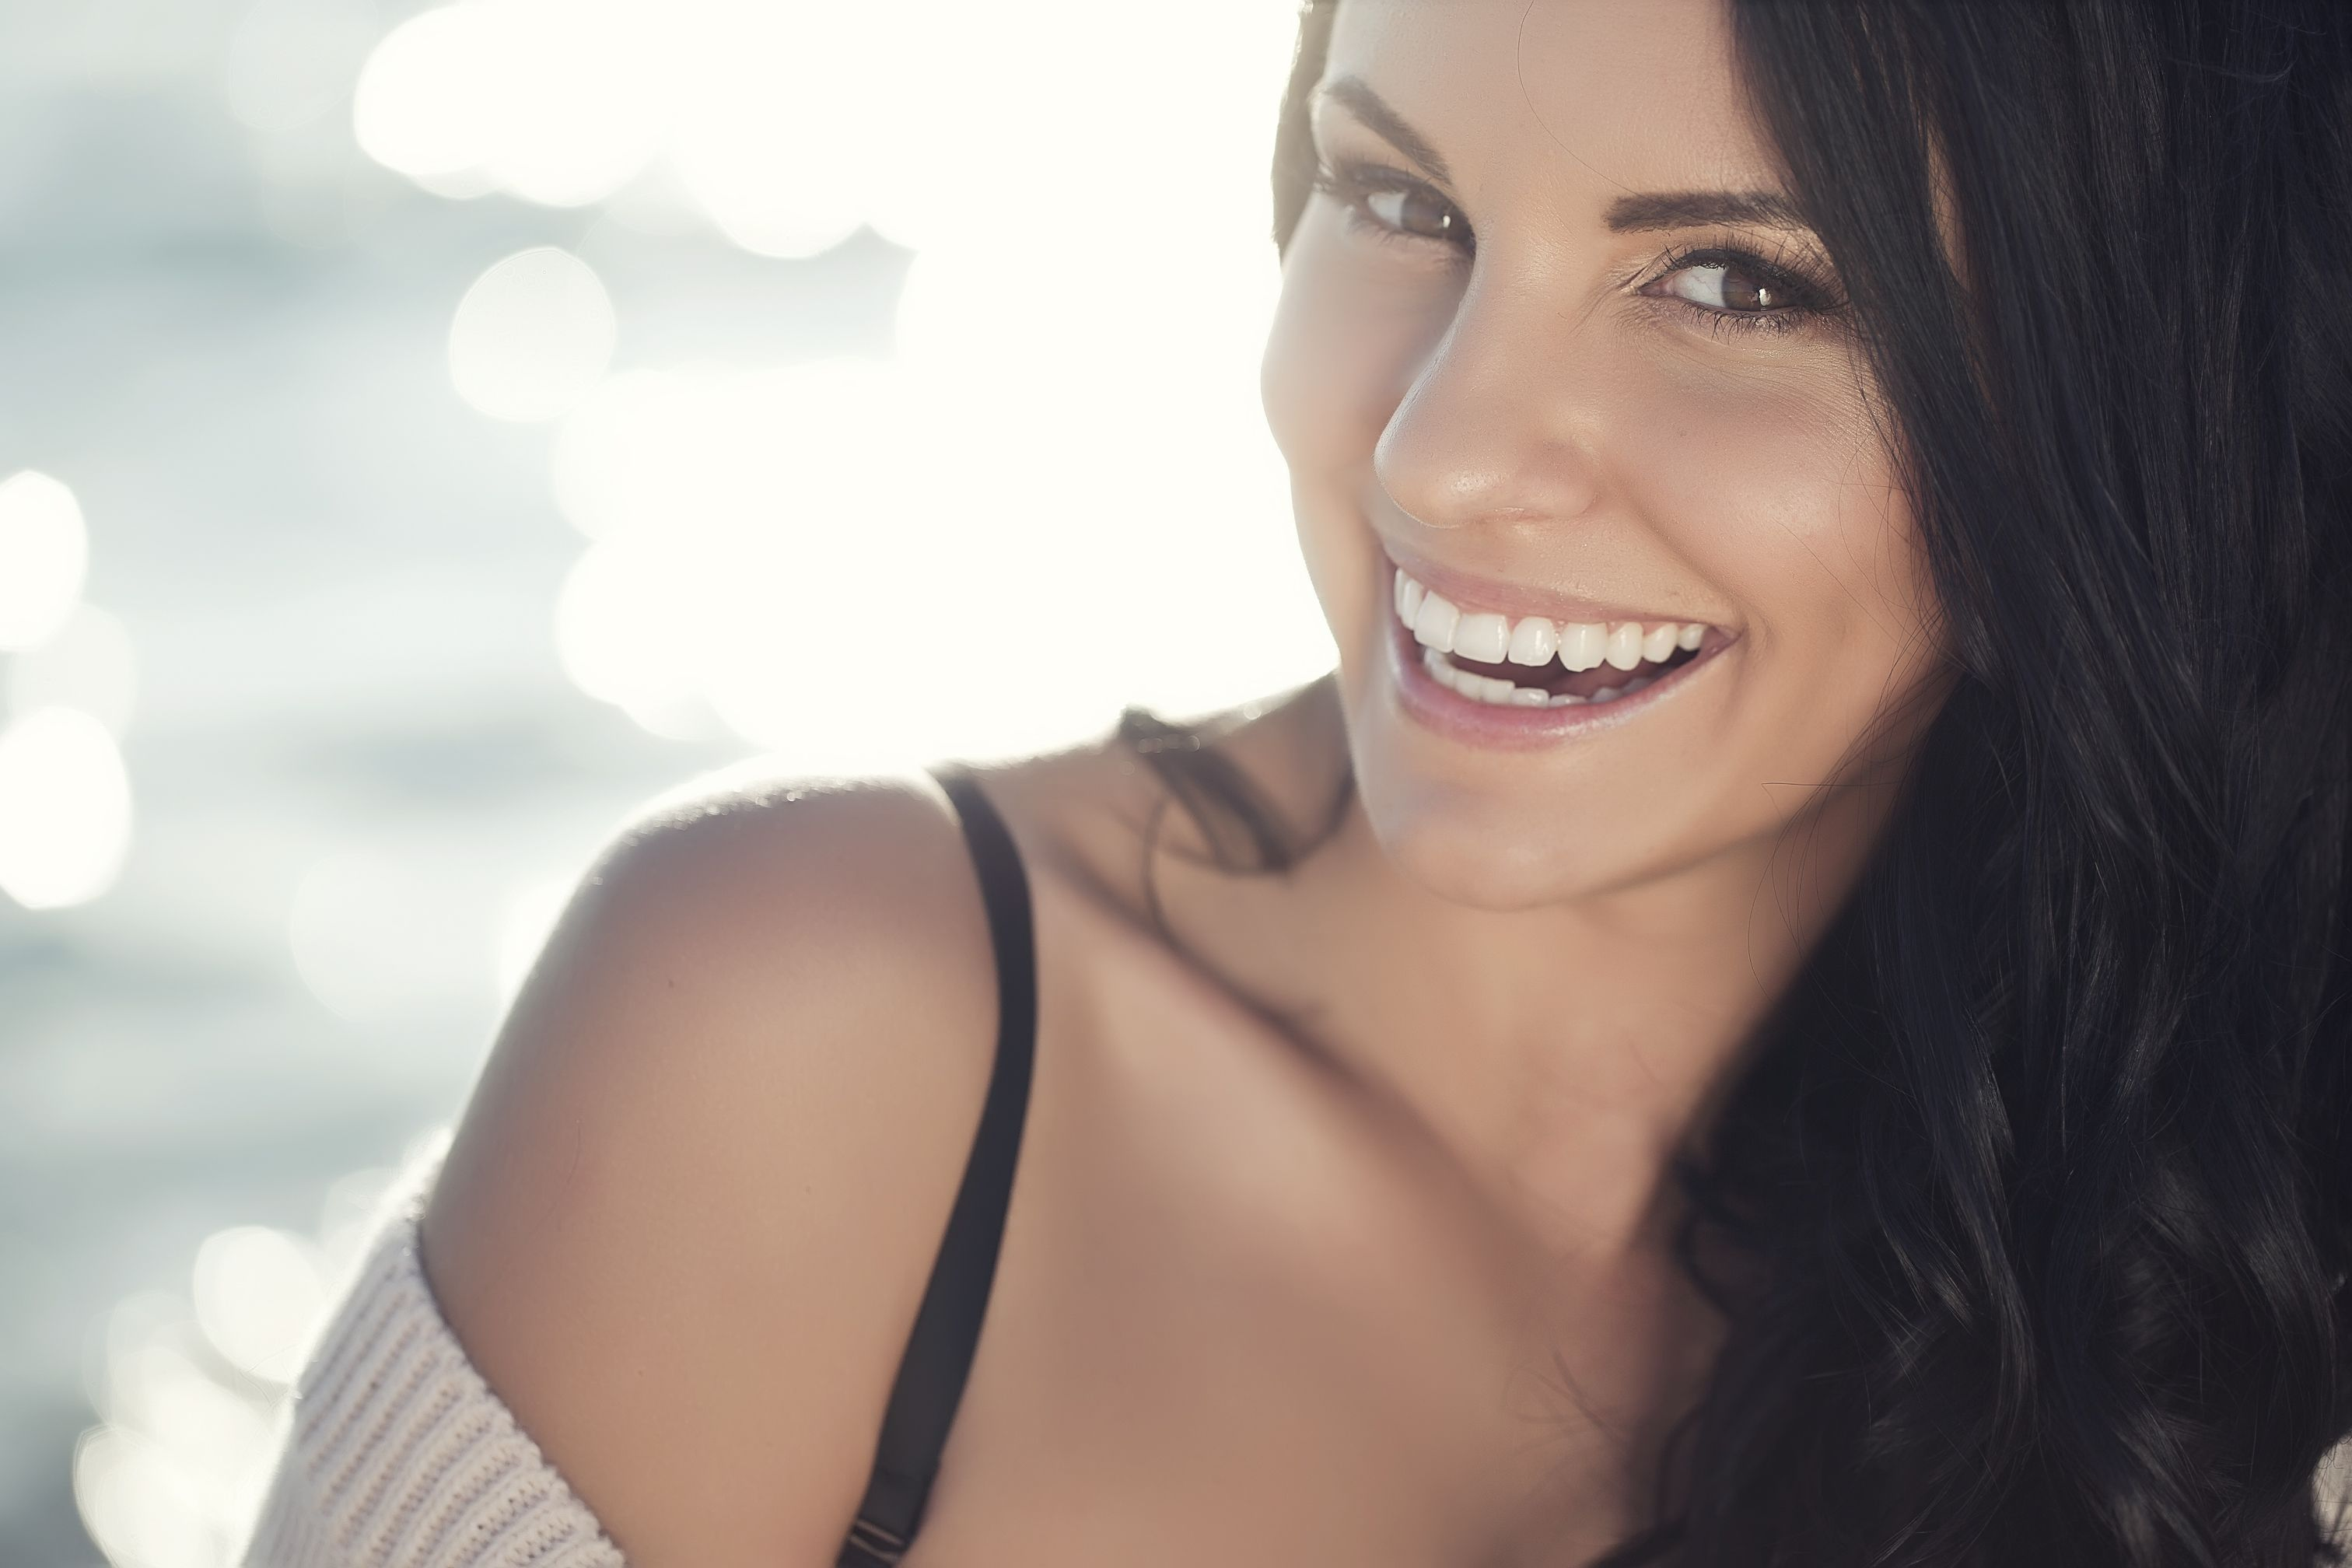 A woman smiling broadly because she has taken years off her appearance through facial plastic surgery